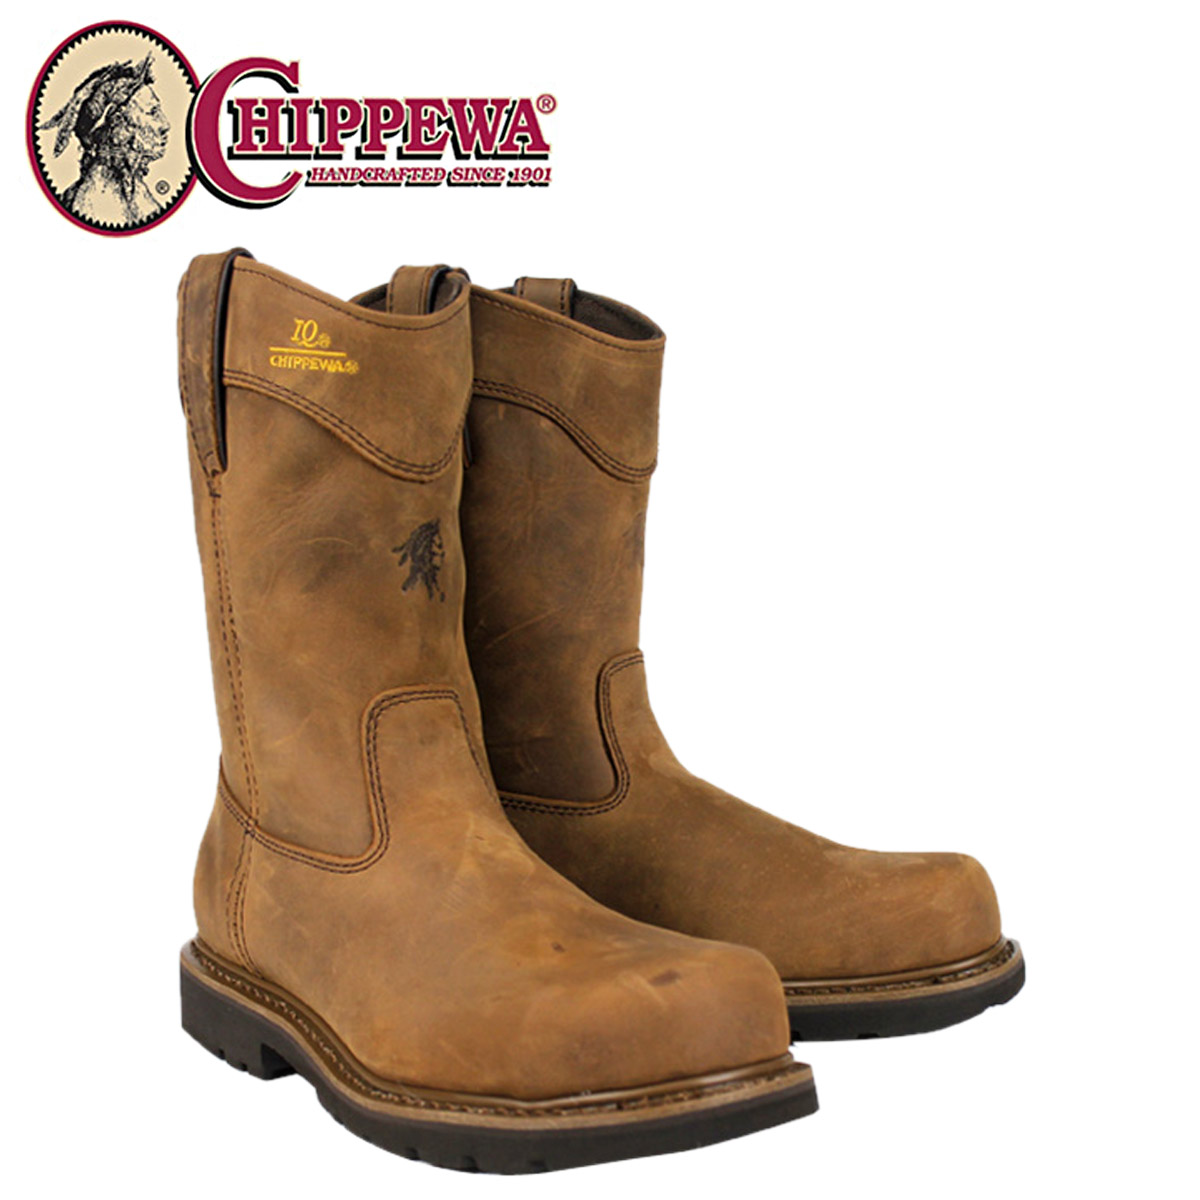 Leather Steel Toe Work Boots - Cr Boot